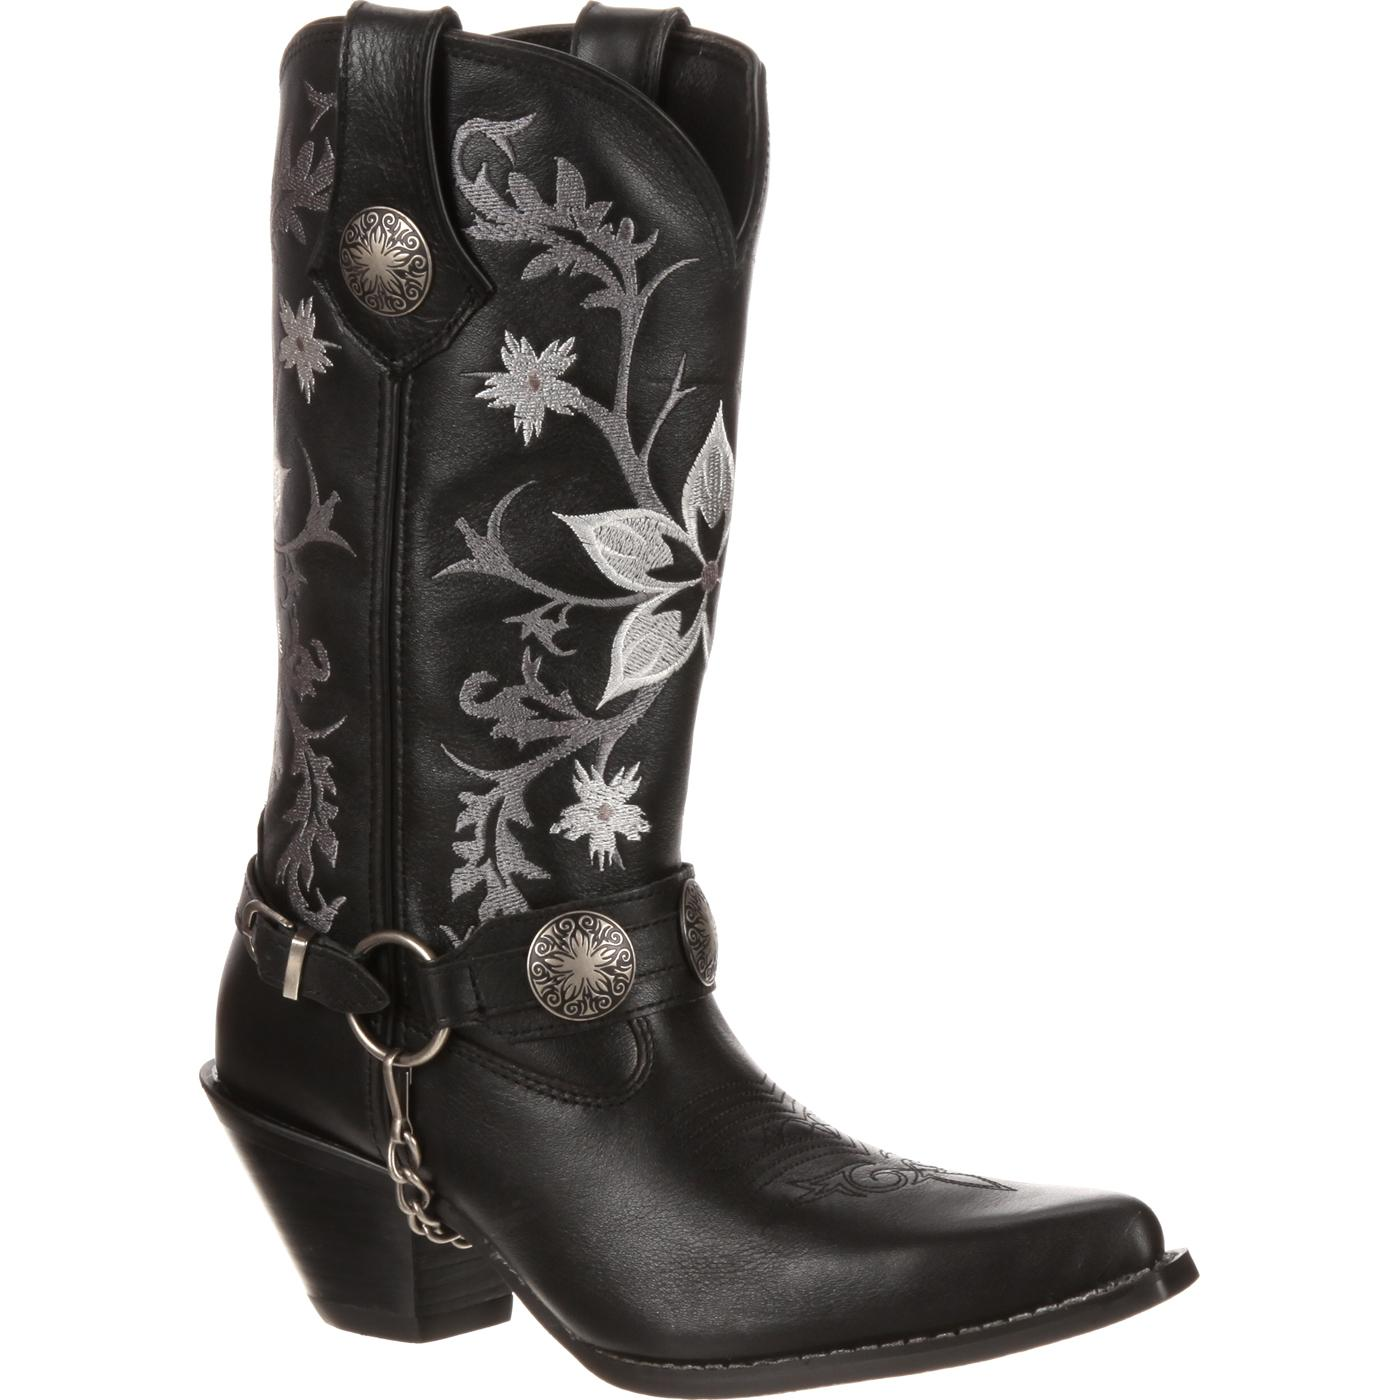 Crush By Durango Black Embroidered Harness Western Boots